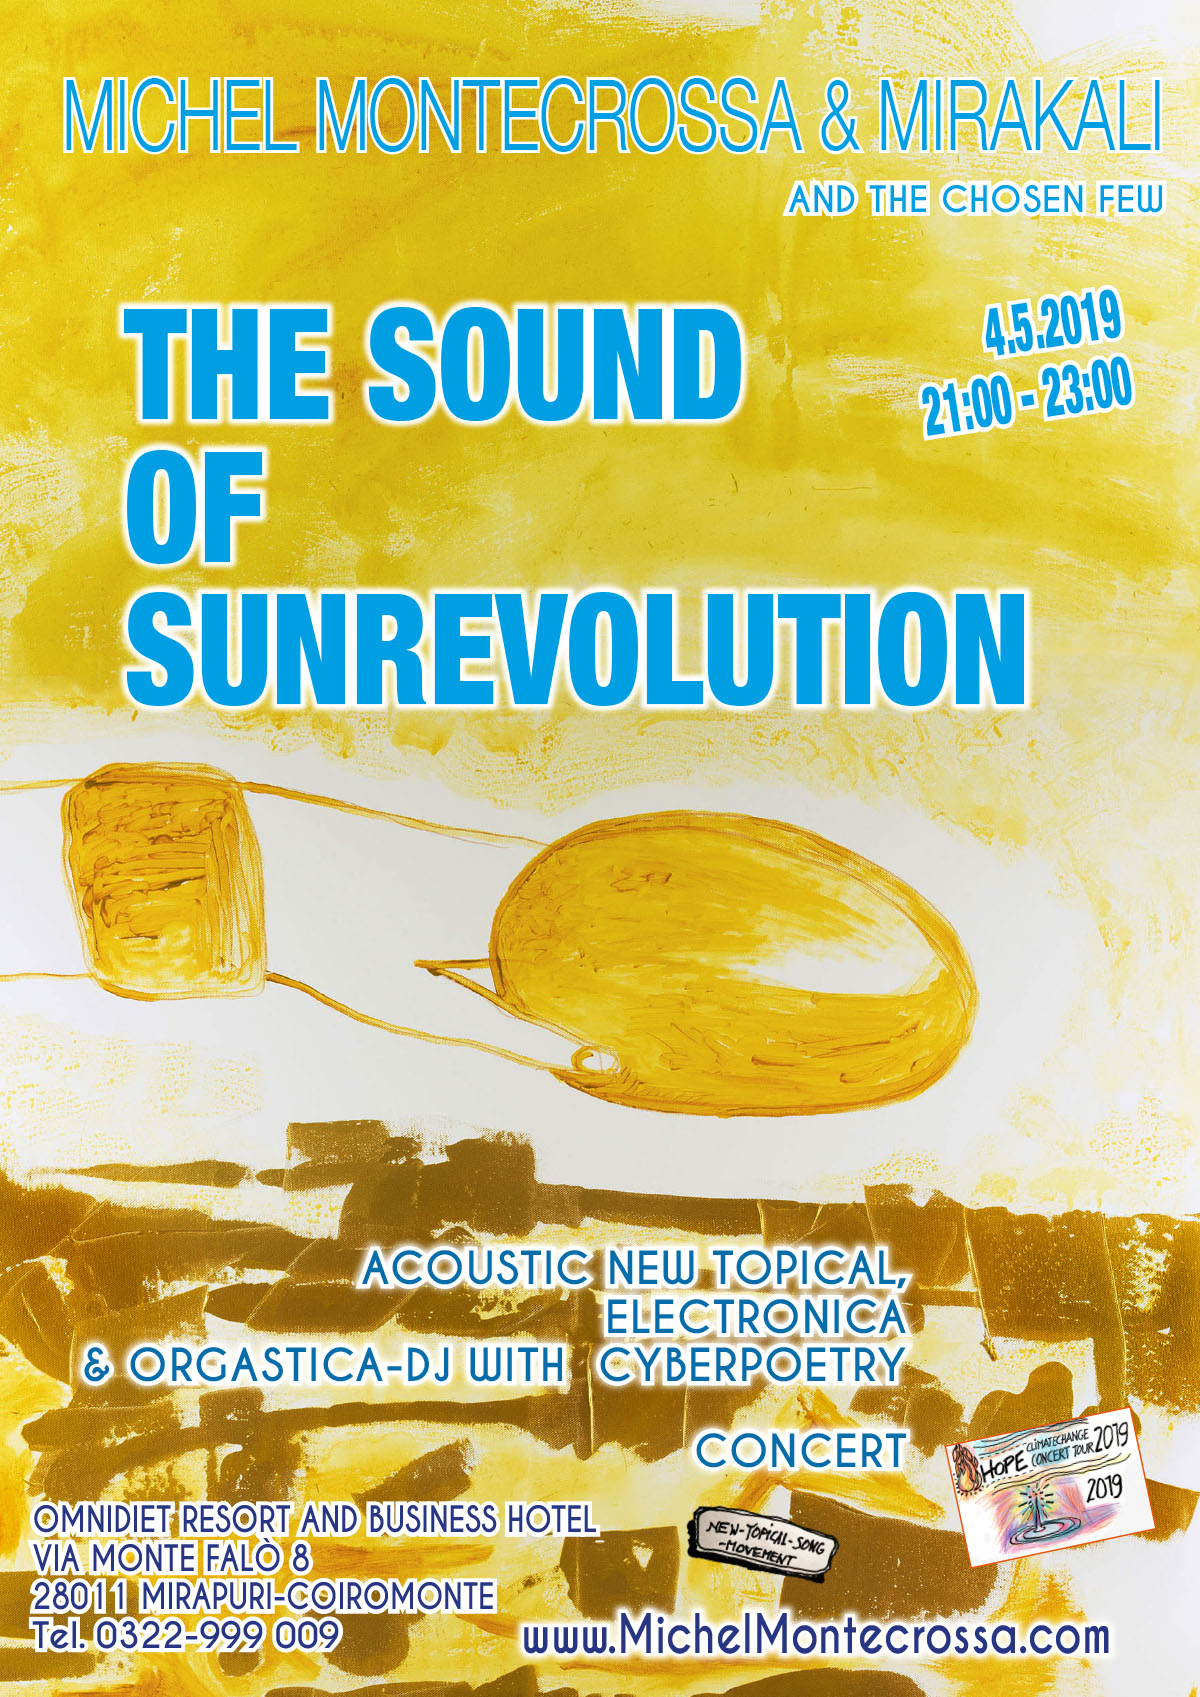 The Sound Of Sunrevolution Concert